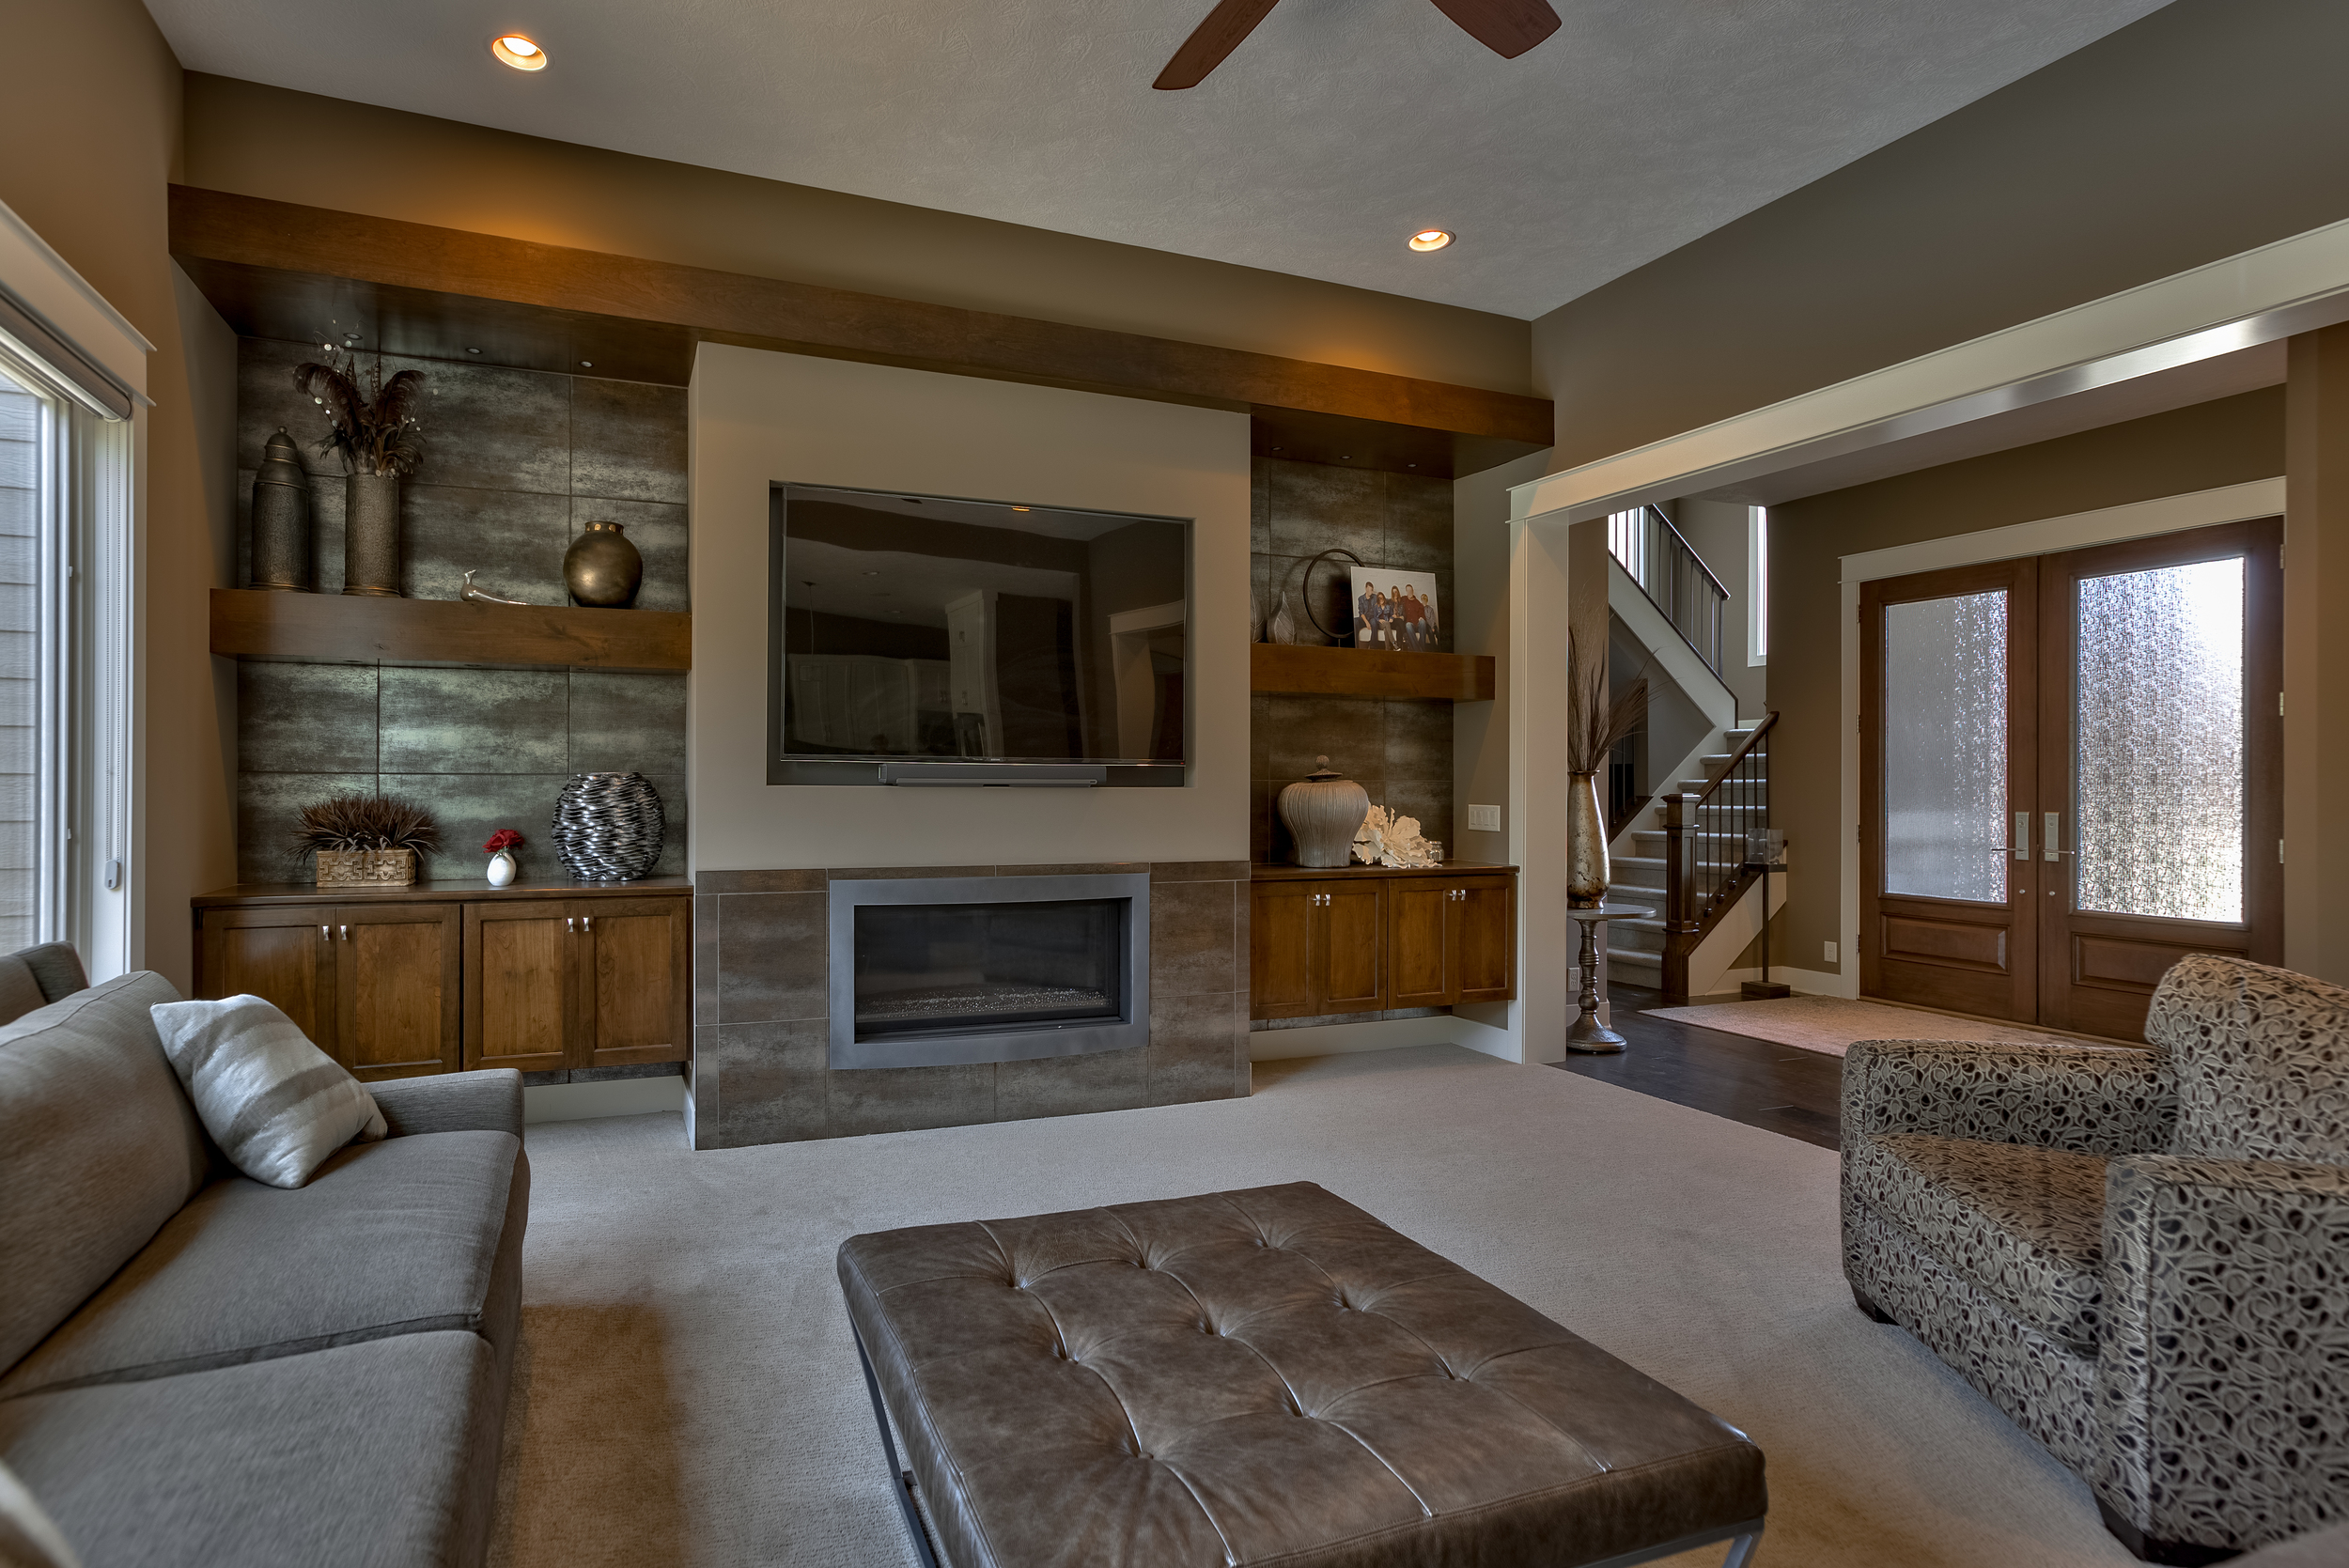 Quest Custom Homes builds luxurious interior spaces.